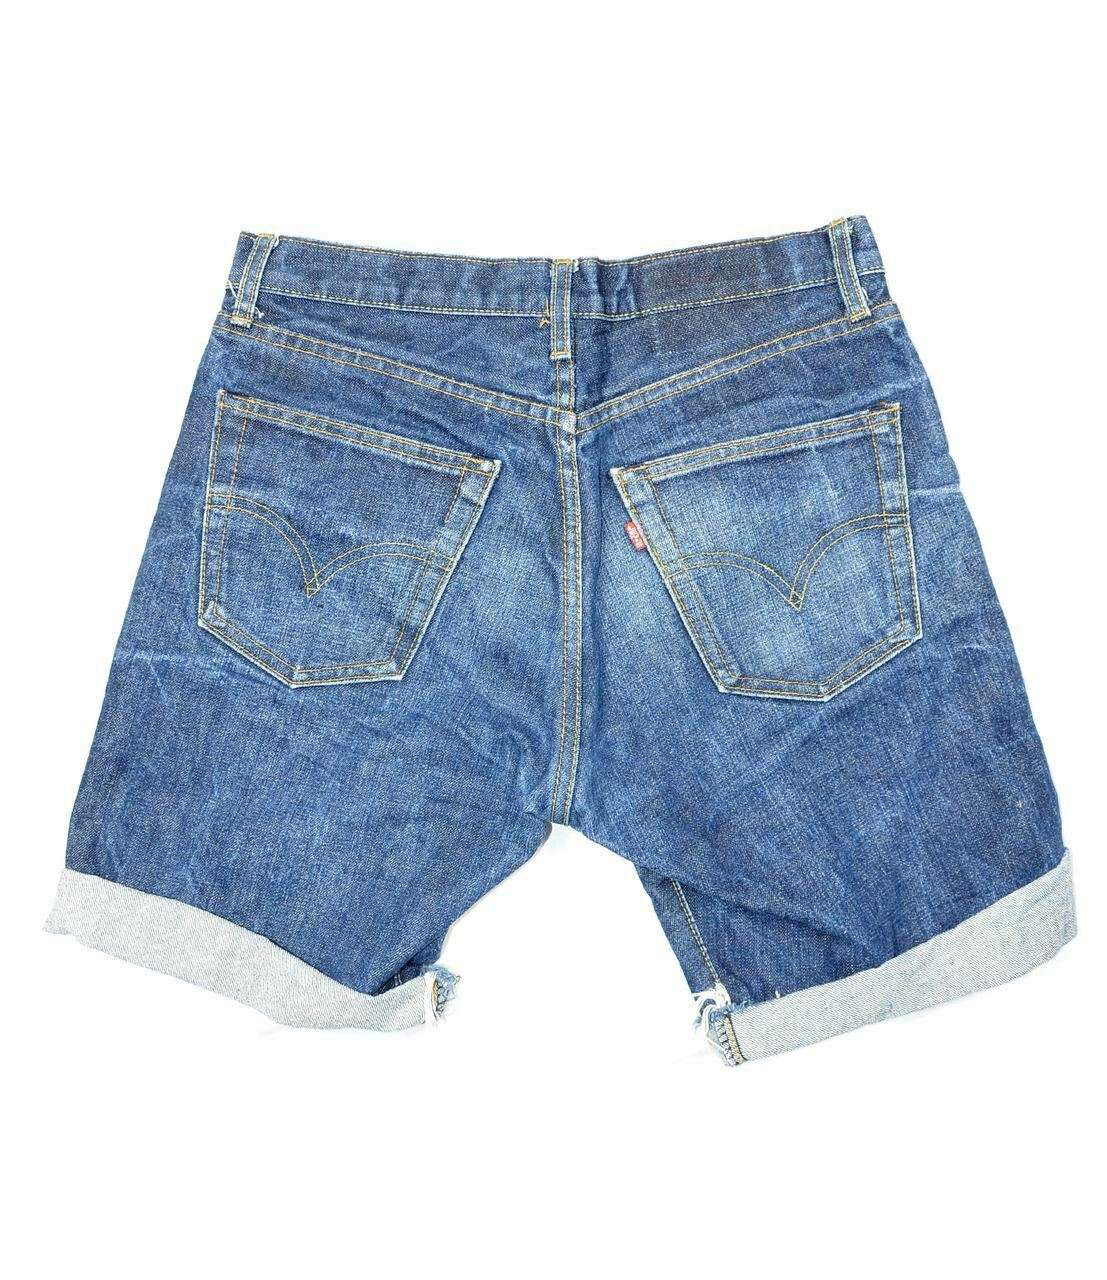 Made in USA Levis 501 Selvedge Shorts - image 2